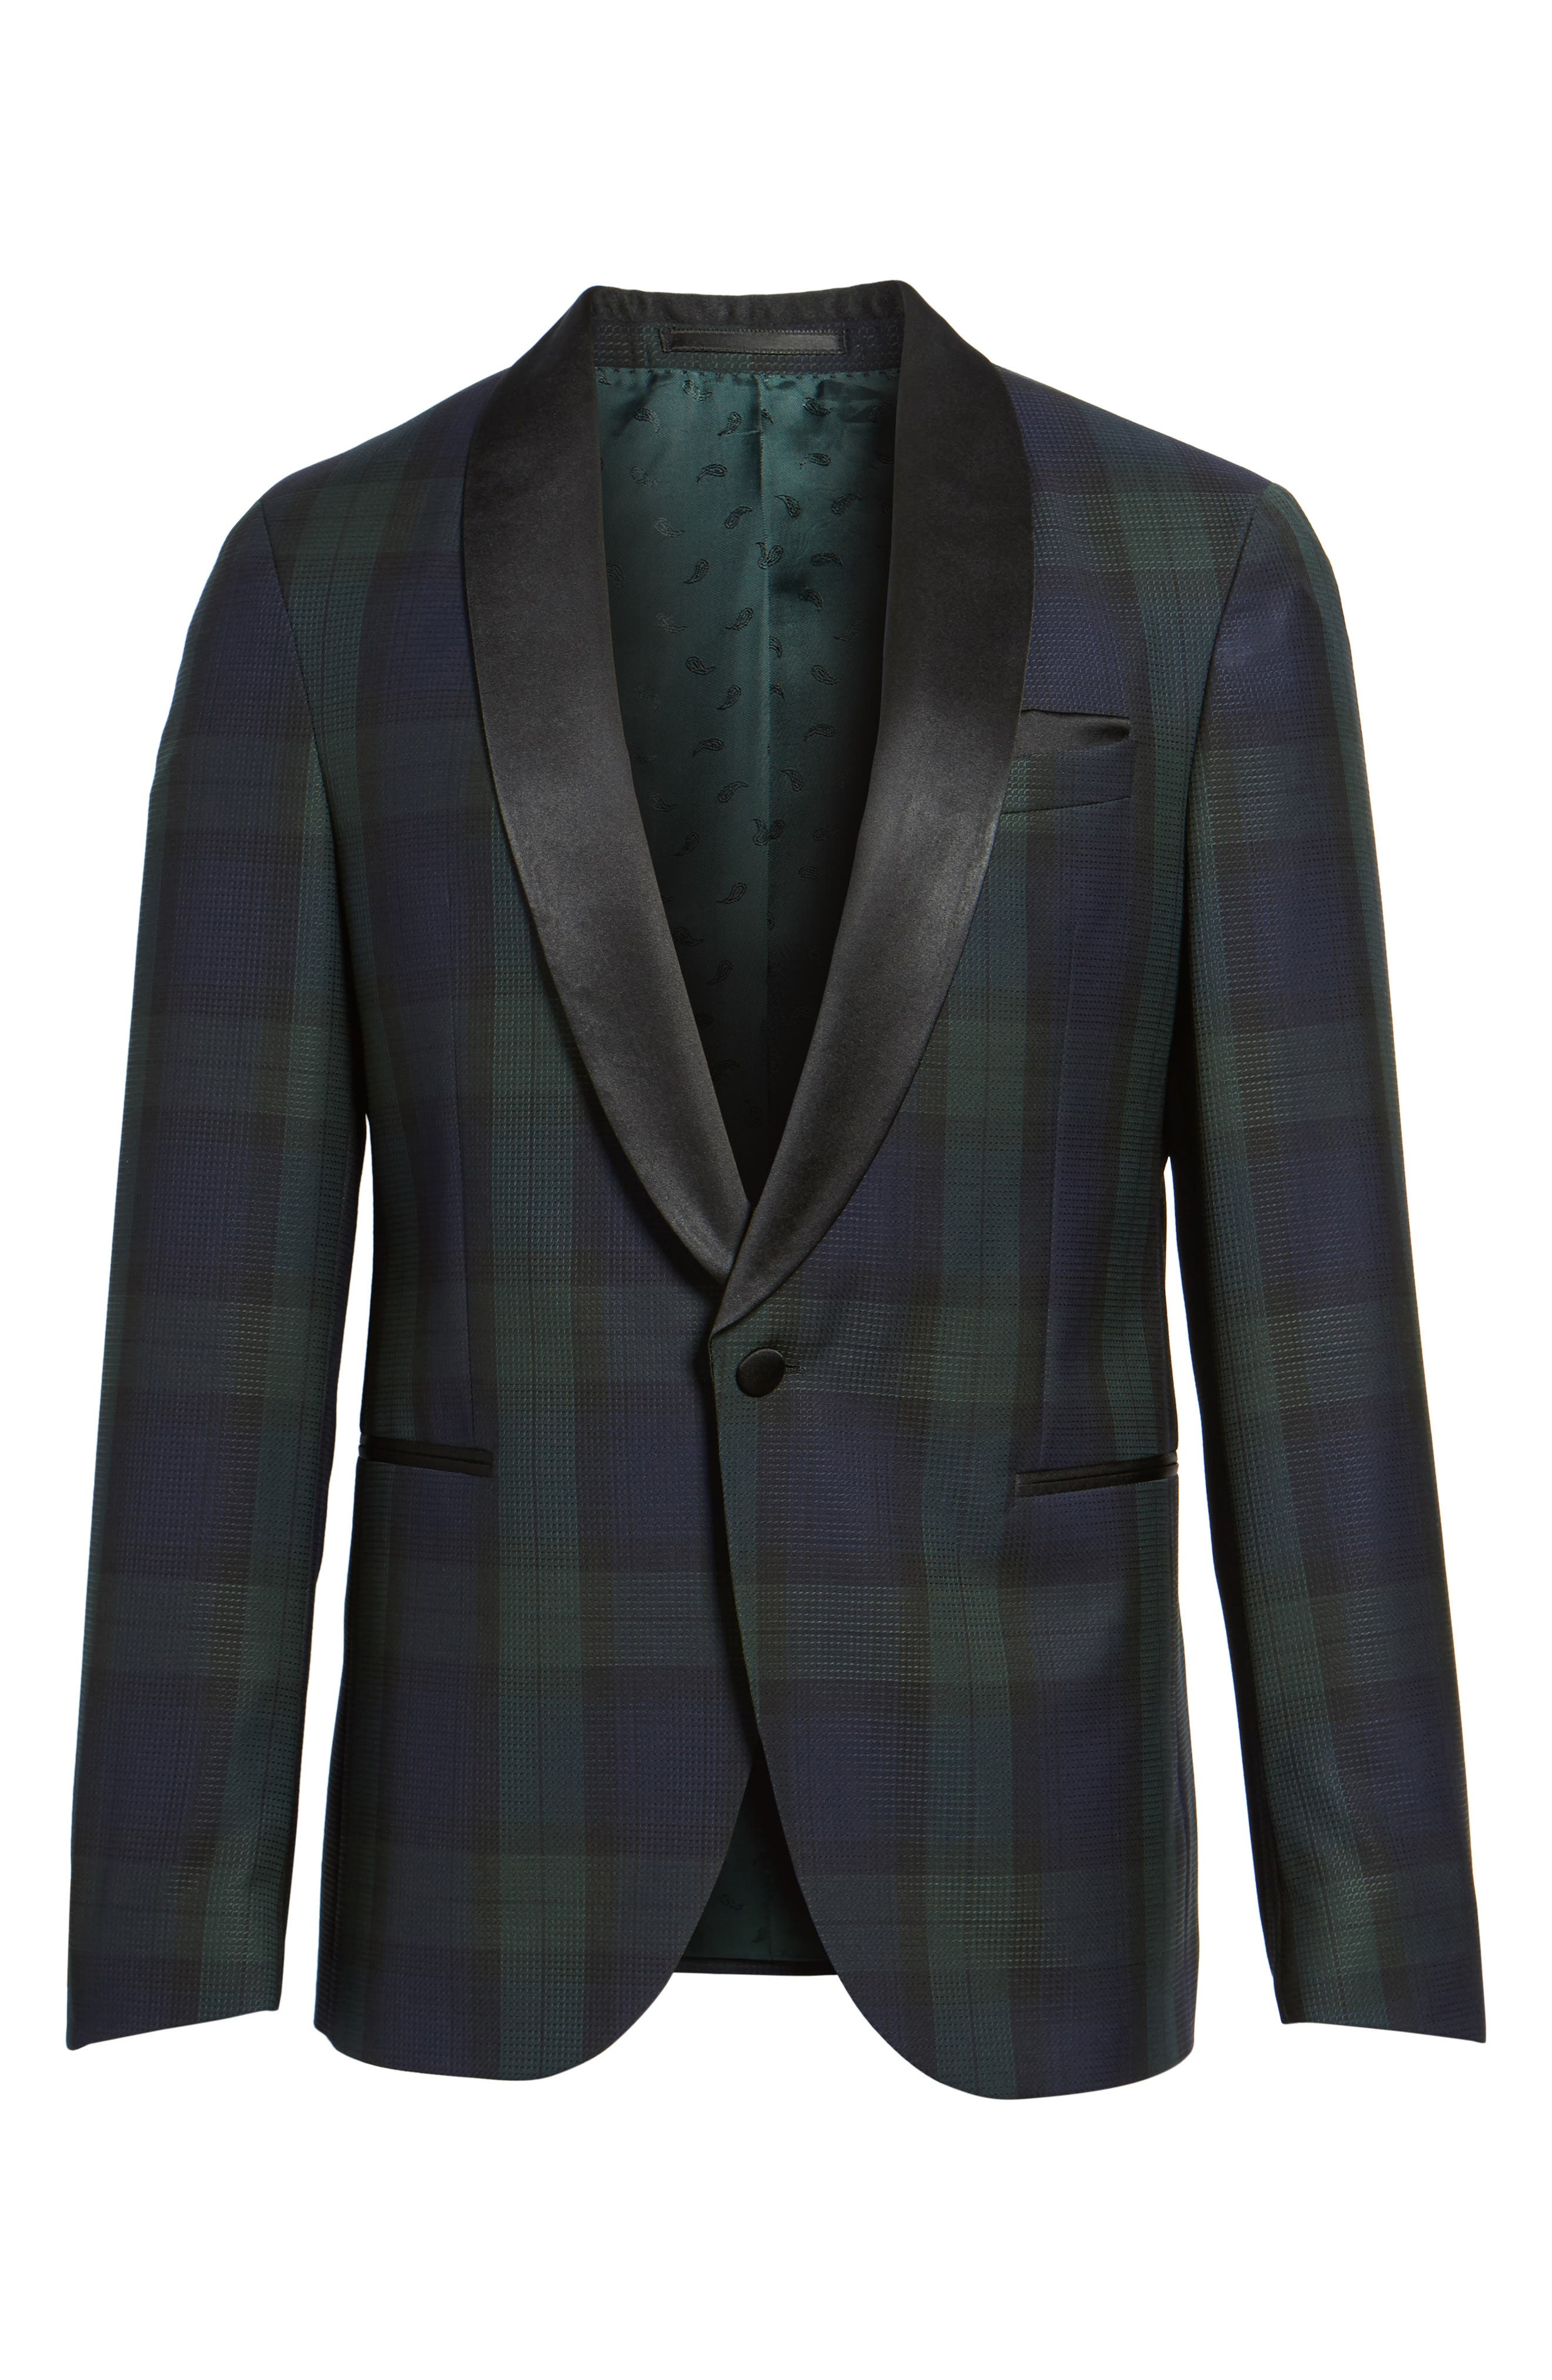 Nemir Classic Fit Wool Dinner Jacket,                             Alternate thumbnail 6, color,                             Green